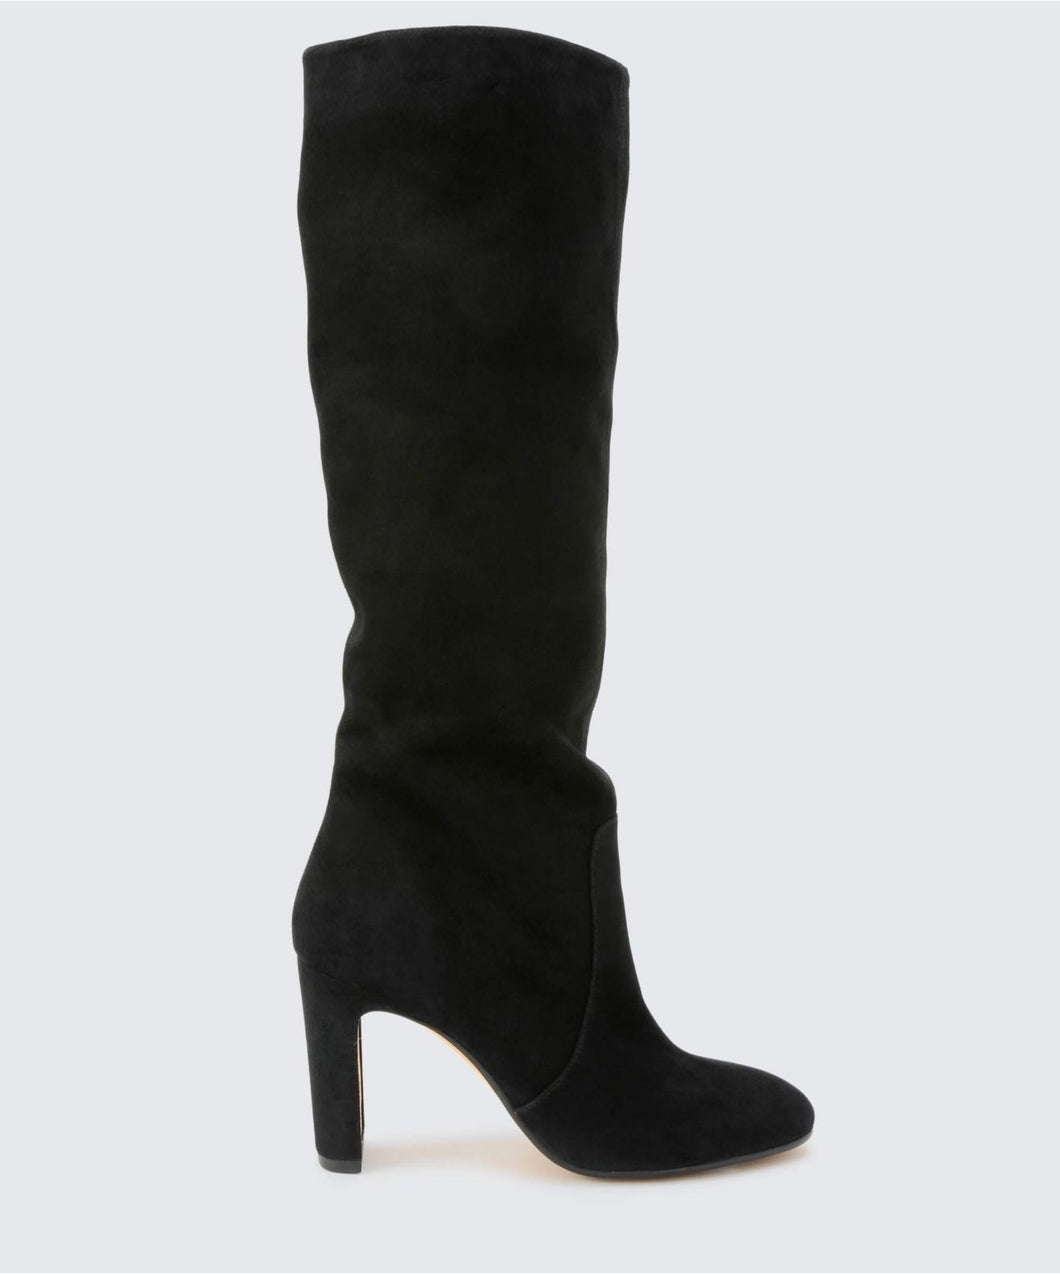 COOP BOOTS IN BLACK -   Dolce Vita